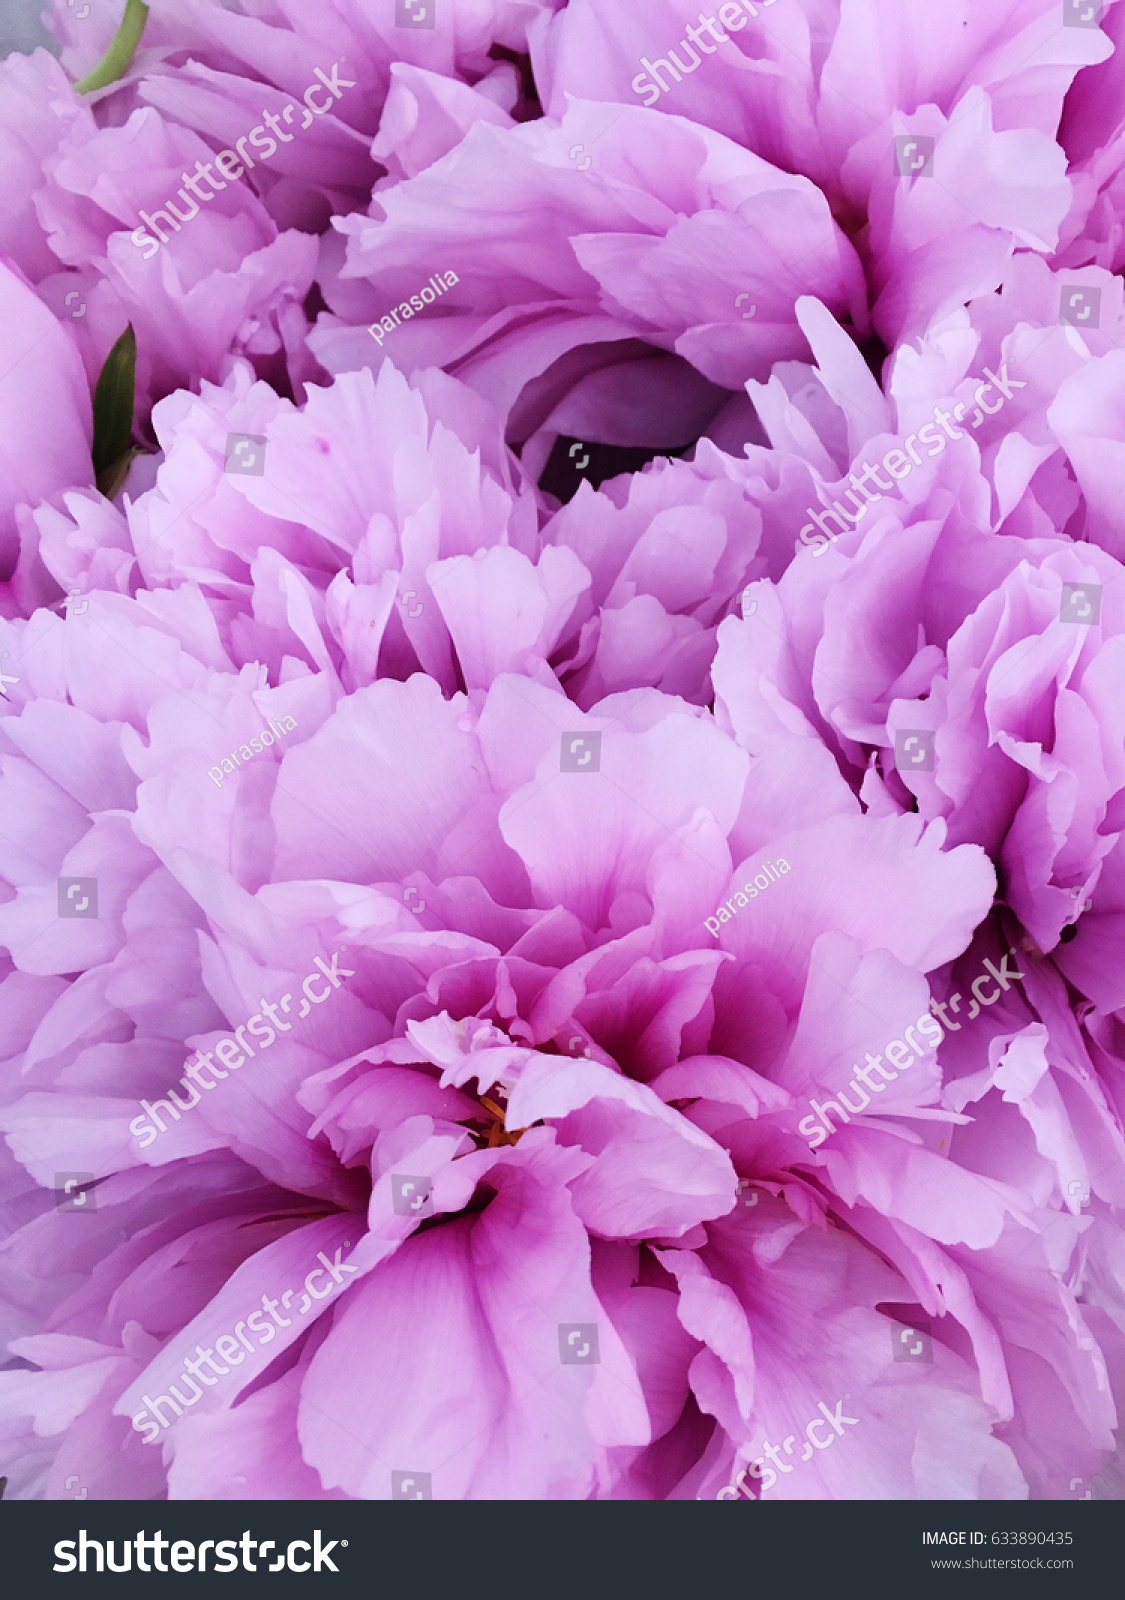 pink peony background rustic peony wallpaper stock photo (edit now